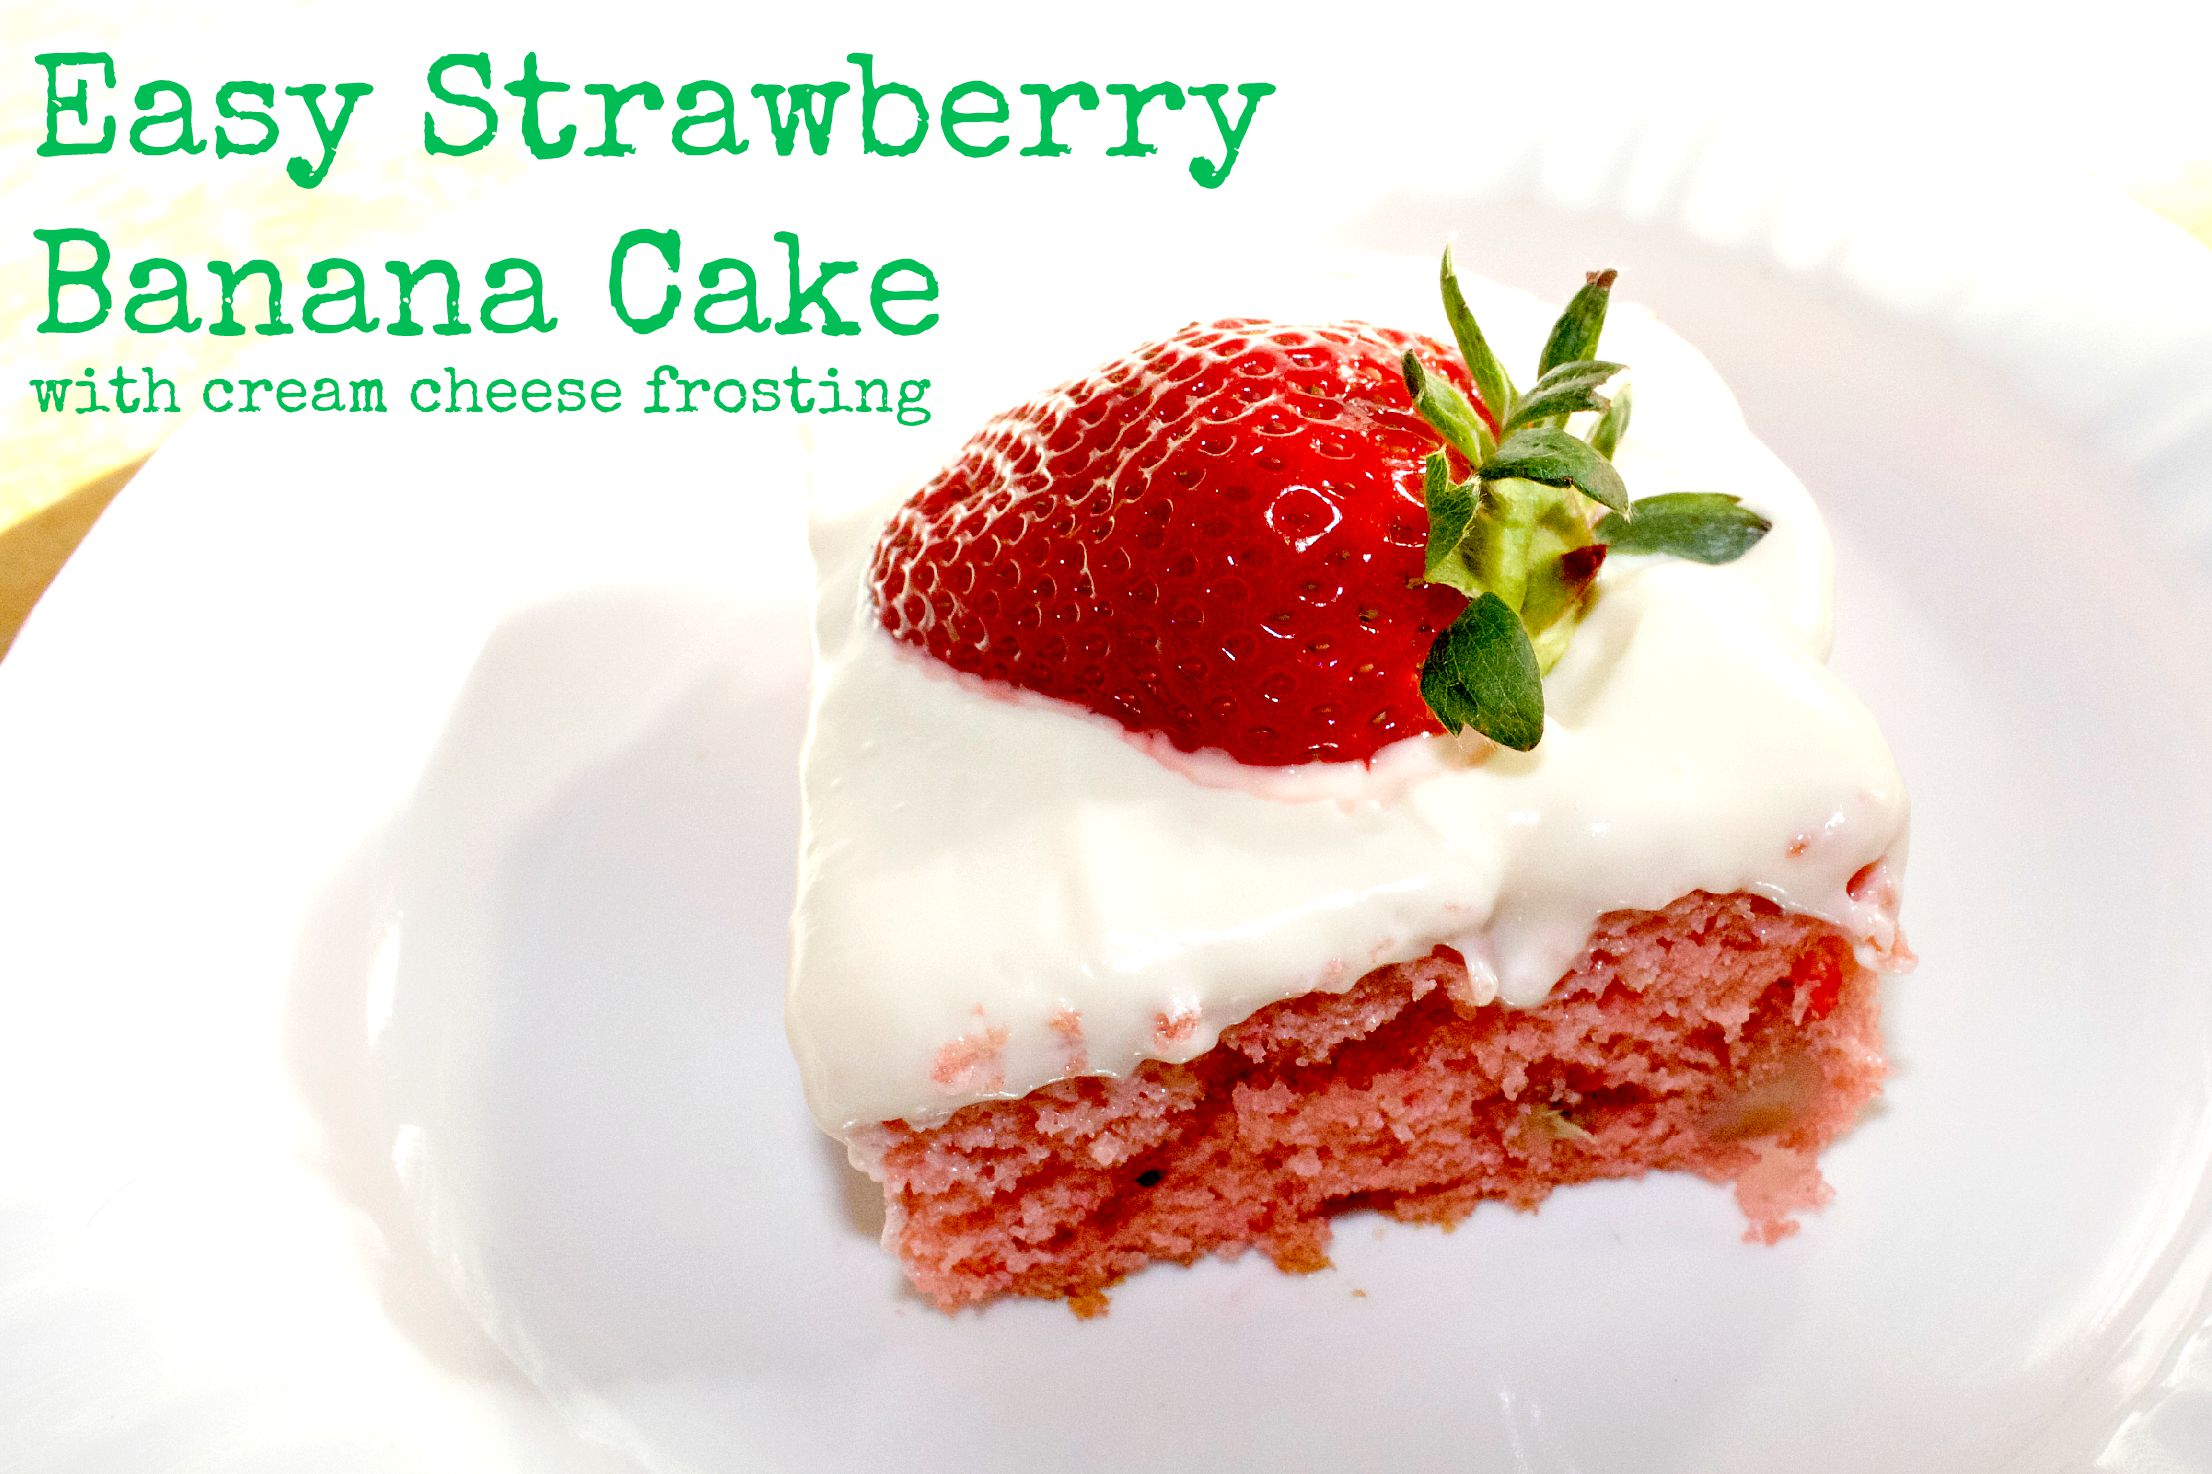 Easy Strawberry Banana Cake Recipe